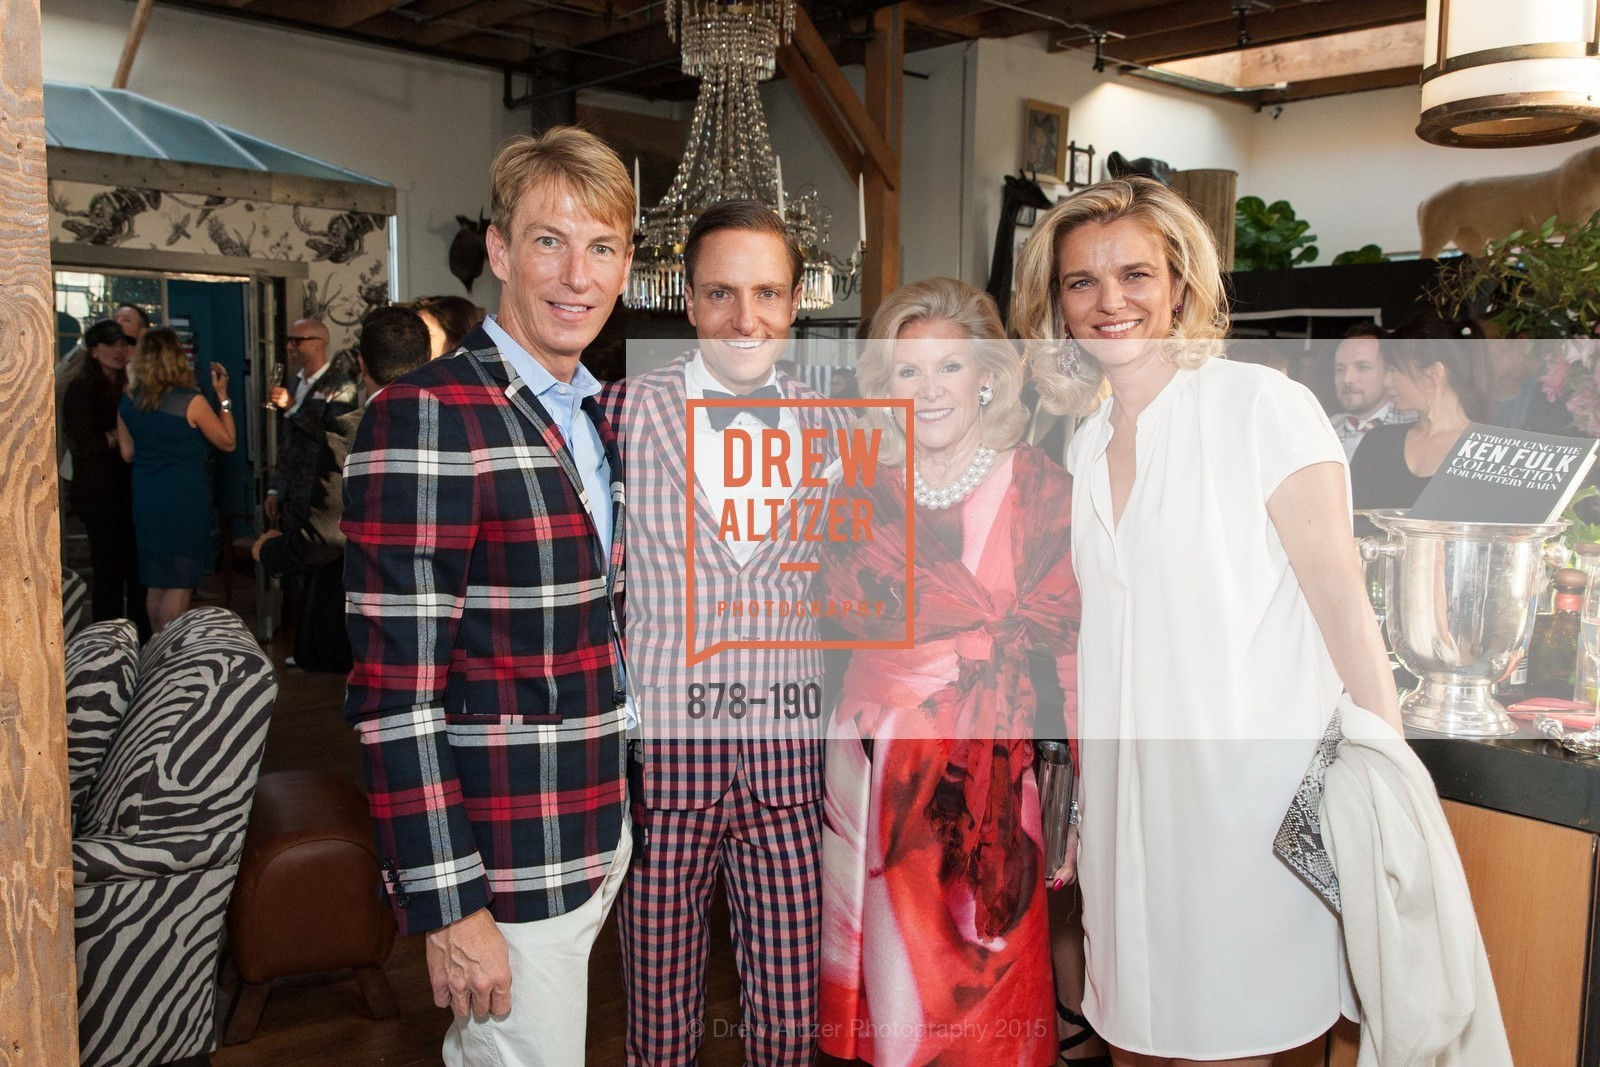 Jack Calhoun, Ken Fulk, Dede Wilsey, Leigh Matthes, KEN FULK'S New Furniture Line Unveiling at THE MAGIC FACTORY, The Magic Factory. 310 7th St, June 25th, 2015,Drew Altizer, Drew Altizer Photography, full-service agency, private events, San Francisco photographer, photographer california